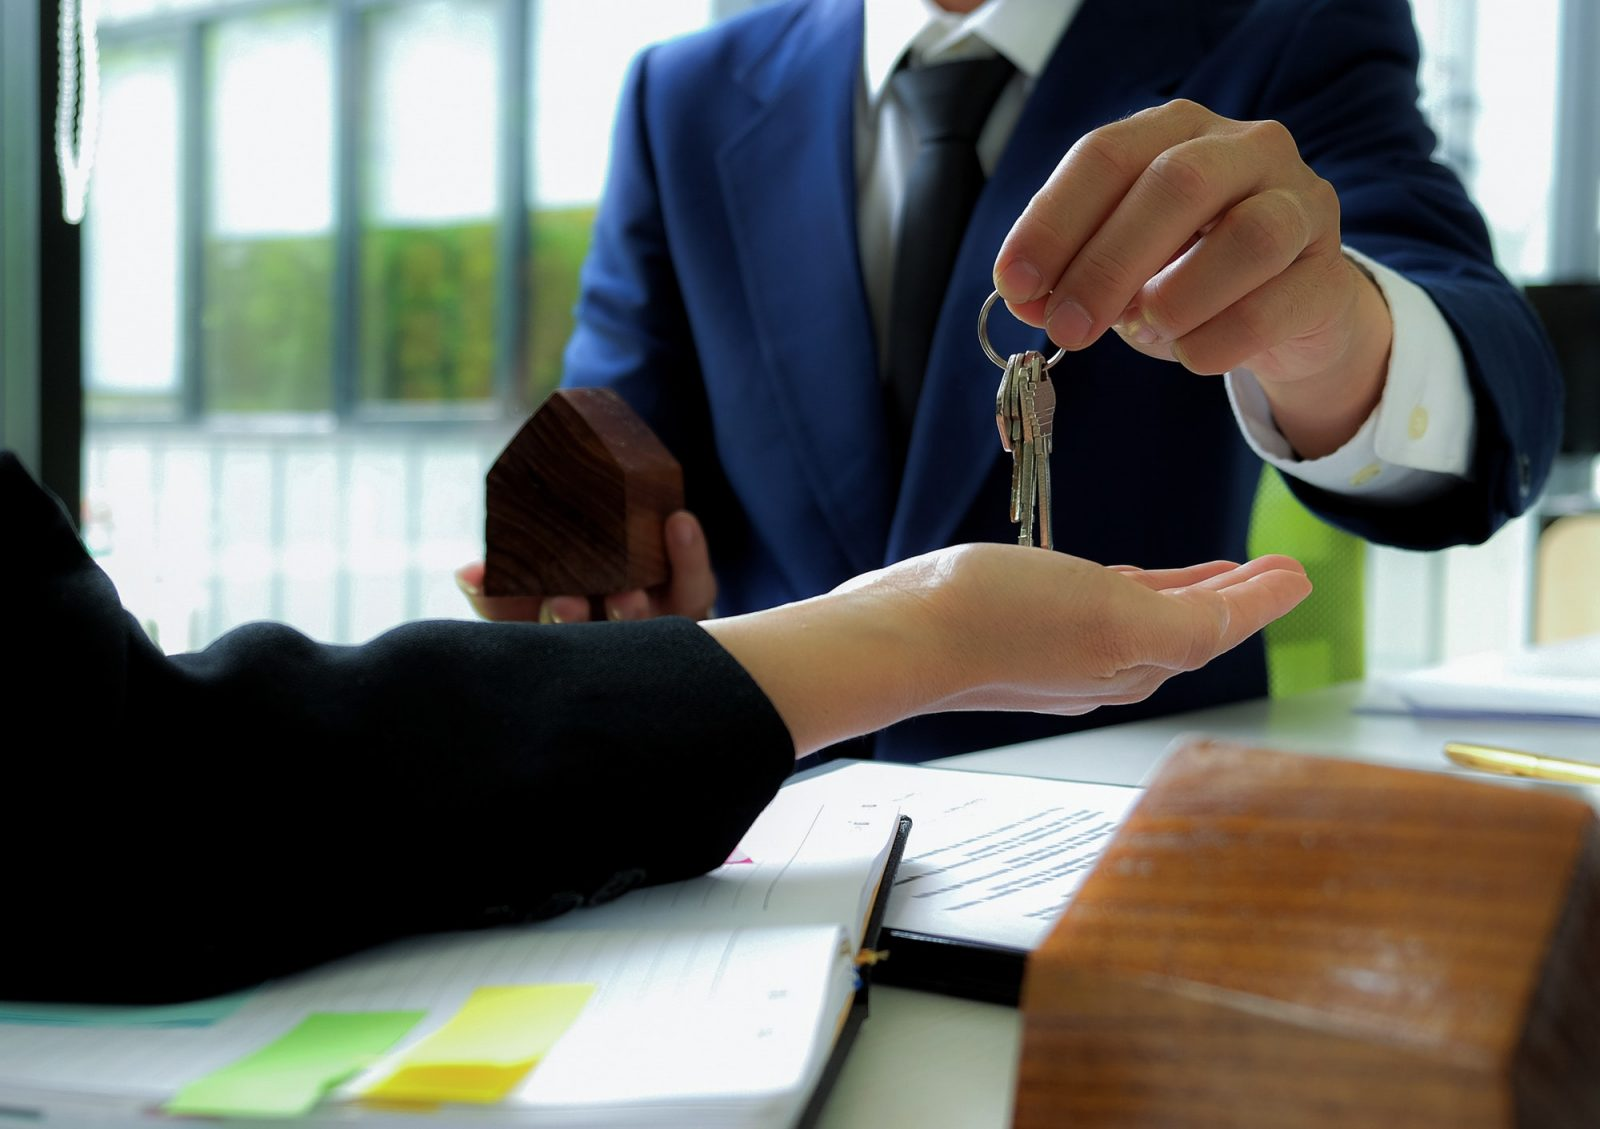 Home sales broker closes the sale and sends key to the customer.